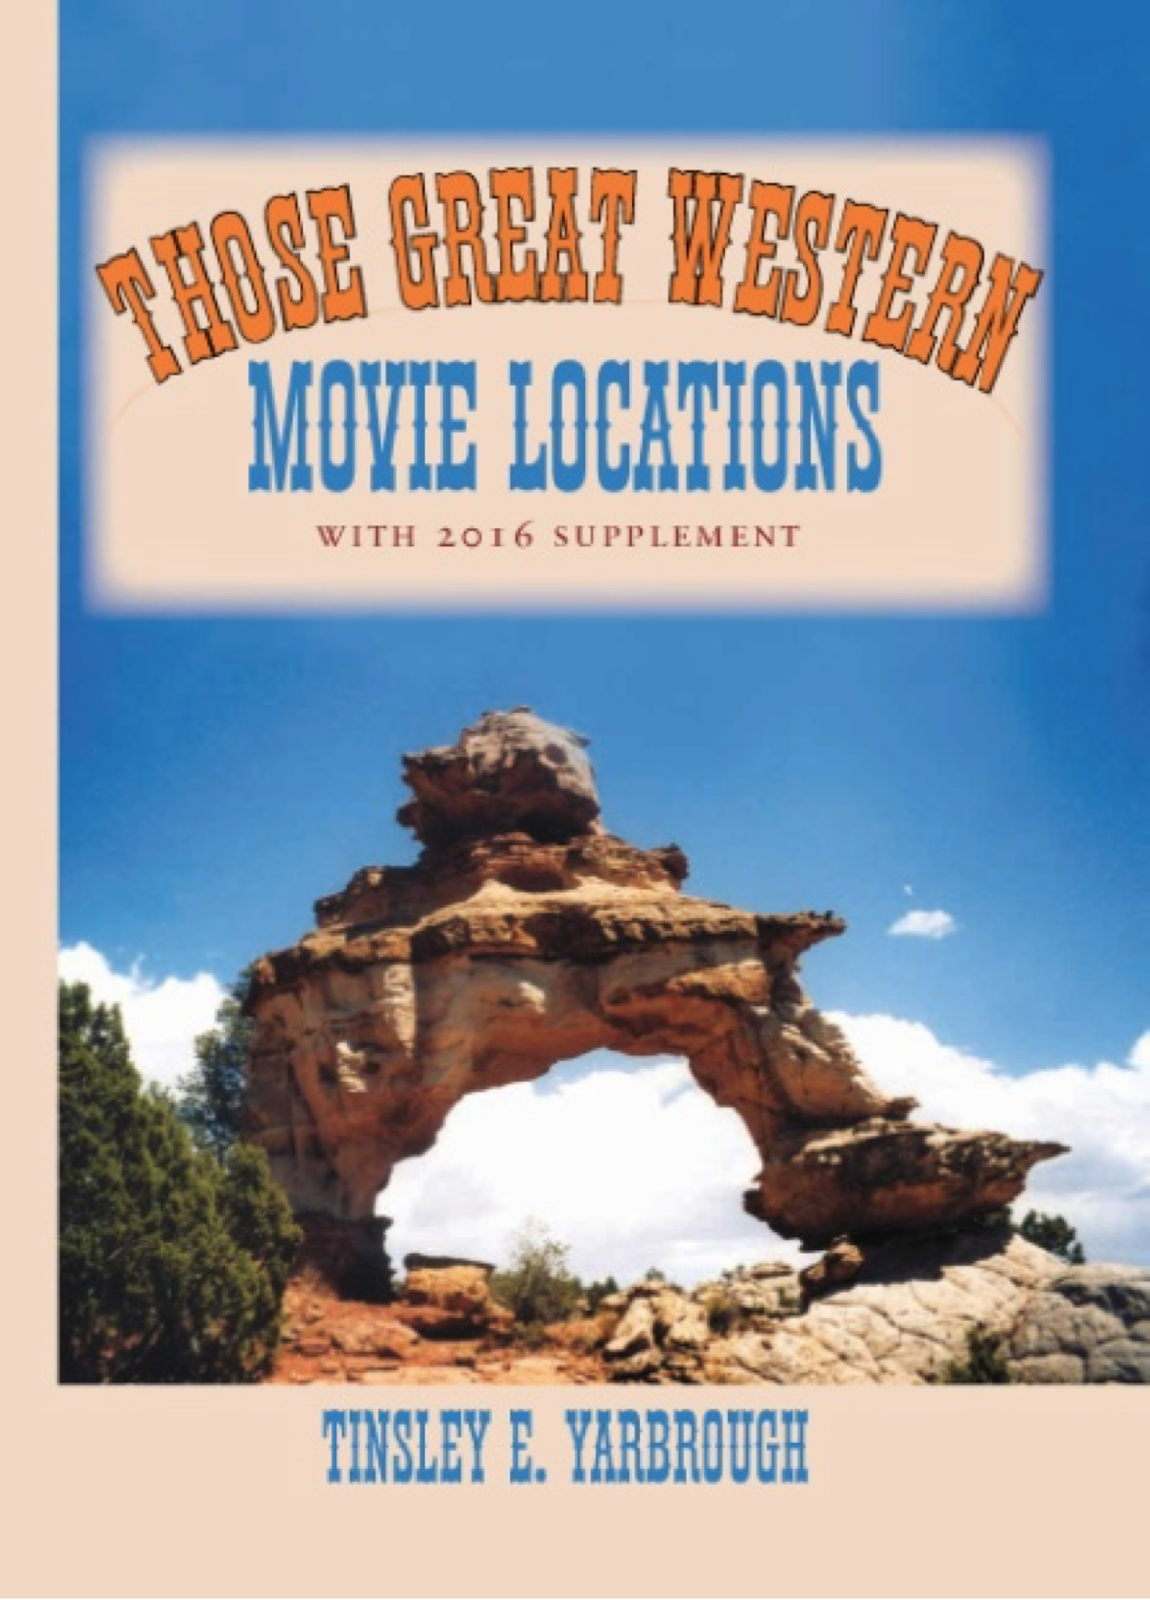 Updated version of Tinsley Yarbrough's amazing Western movie location book